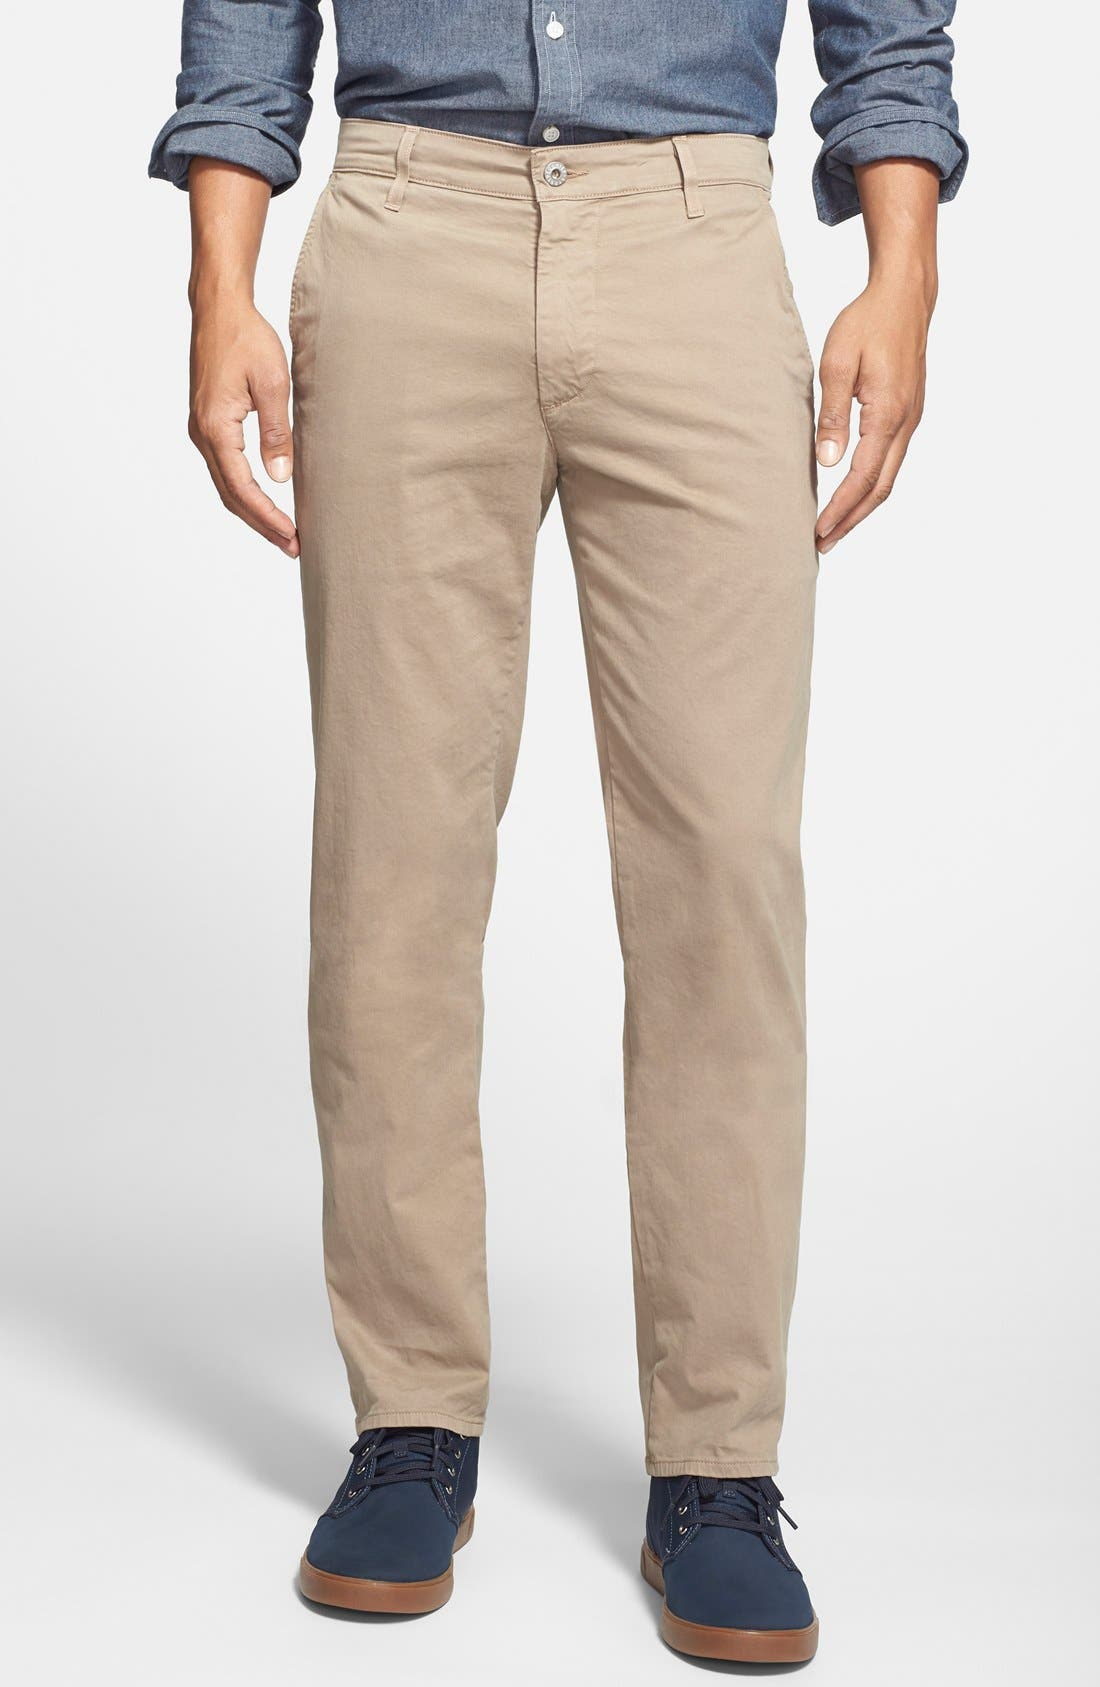 'The Lux' Tailored Straight Leg Chinos,                             Main thumbnail 11, color,